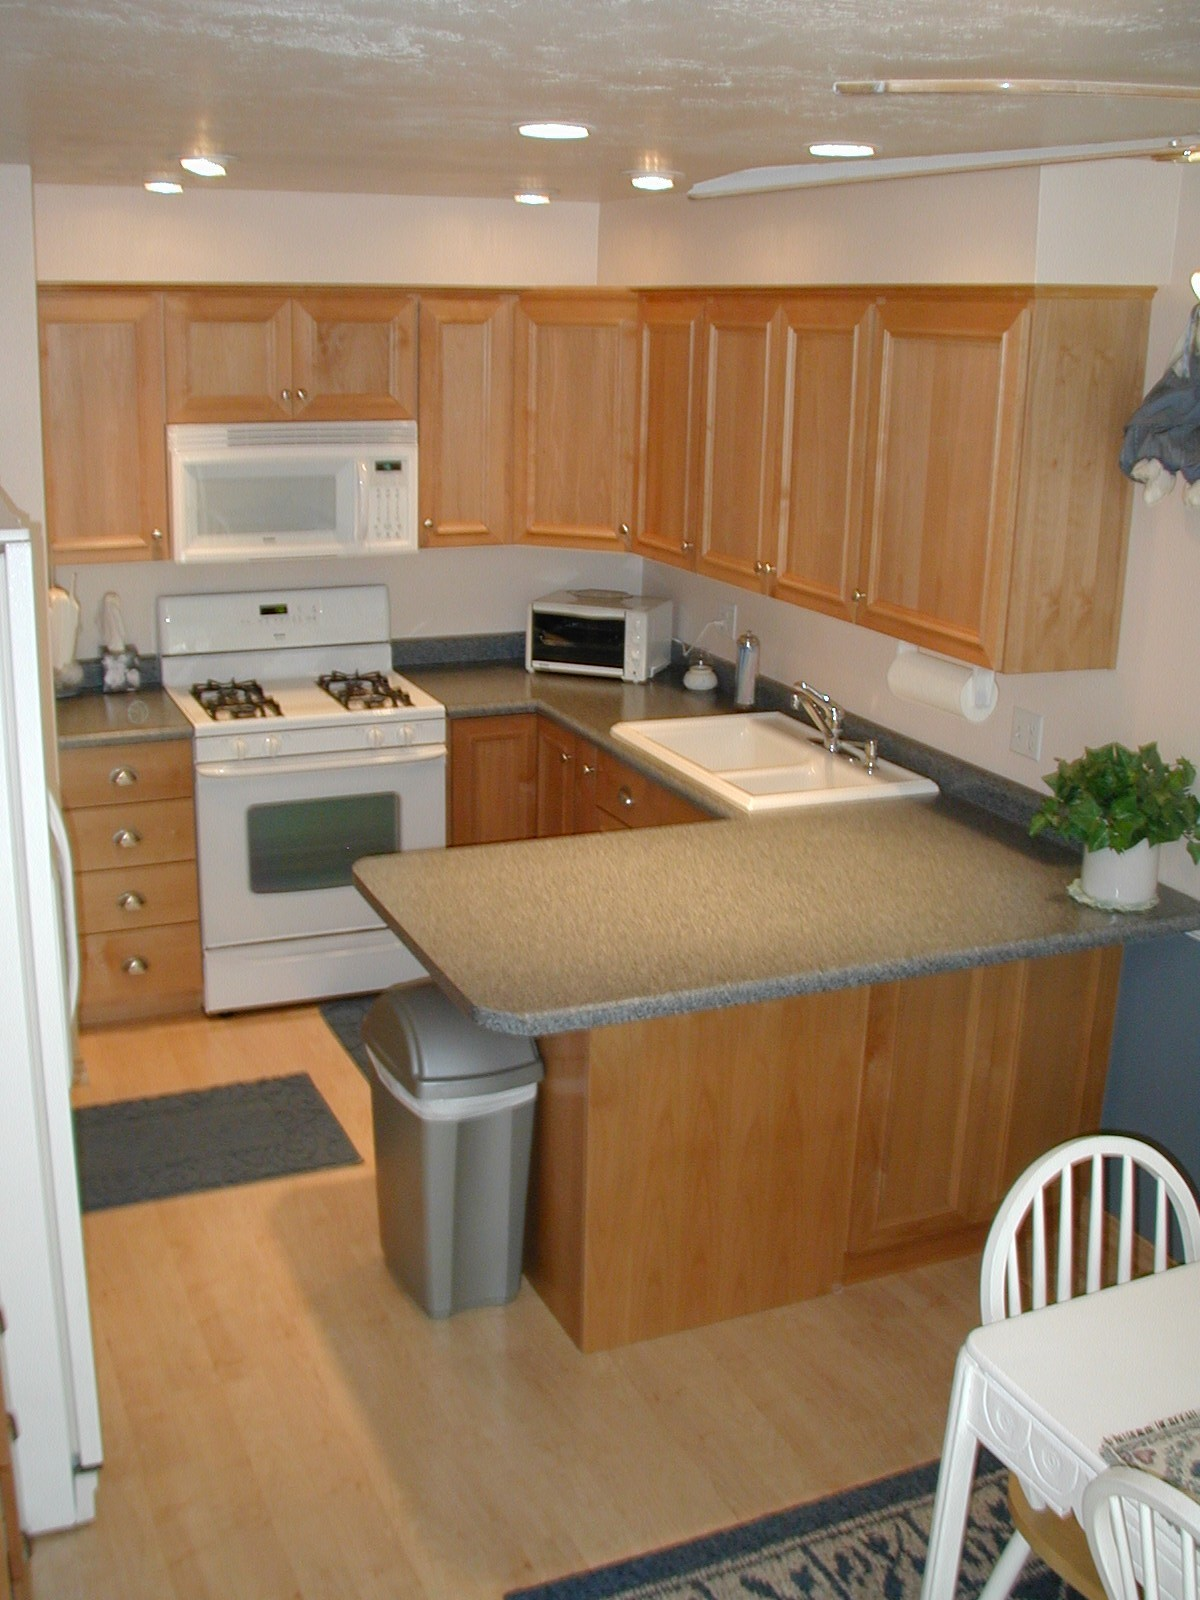 Adding An Over The Range Microwave Kitchen 5 Jpg